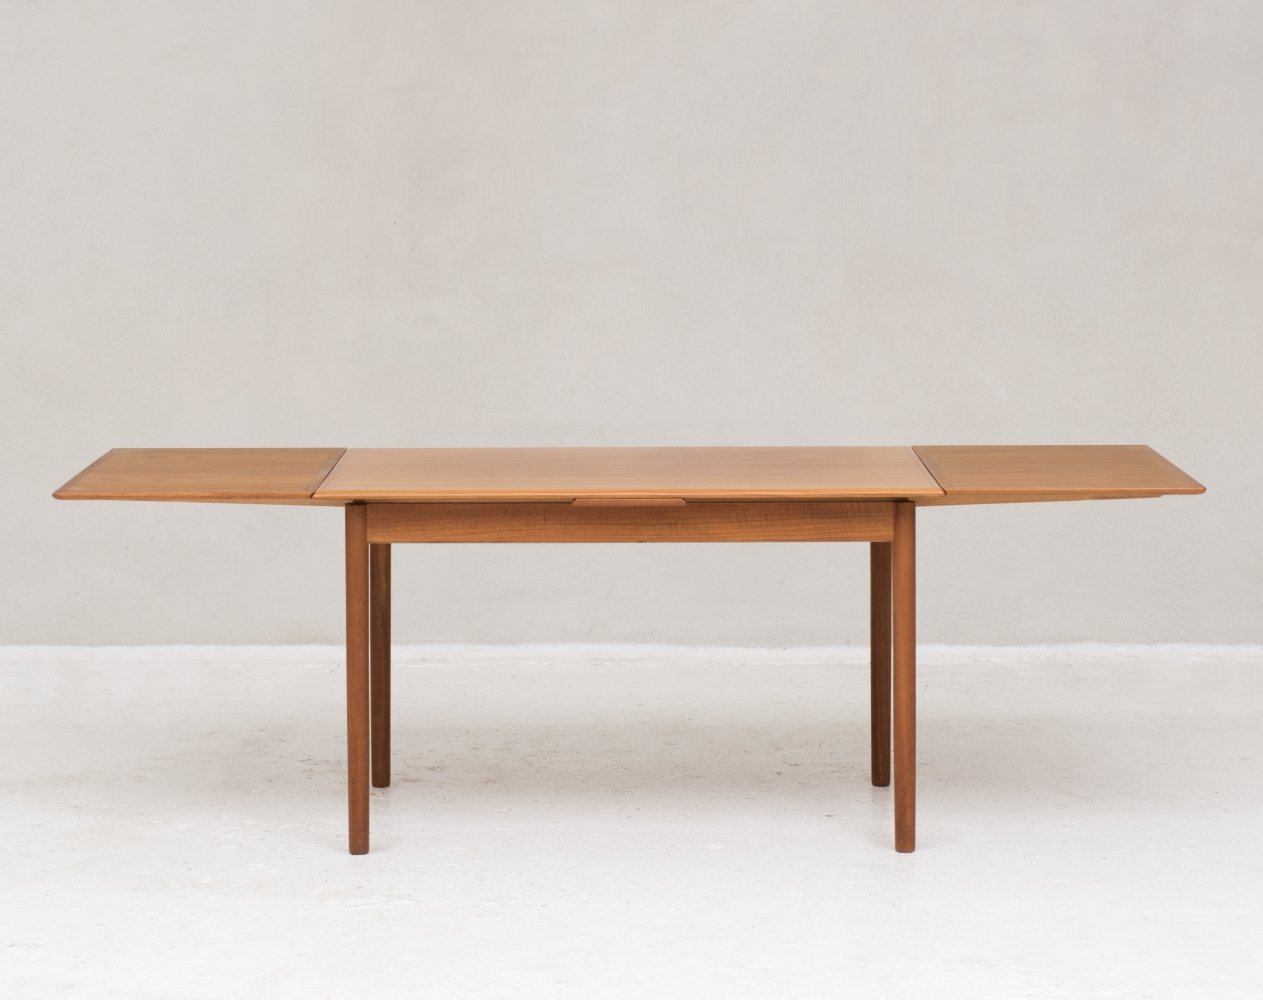 Dining table by HS Mobler, Denmark 1960